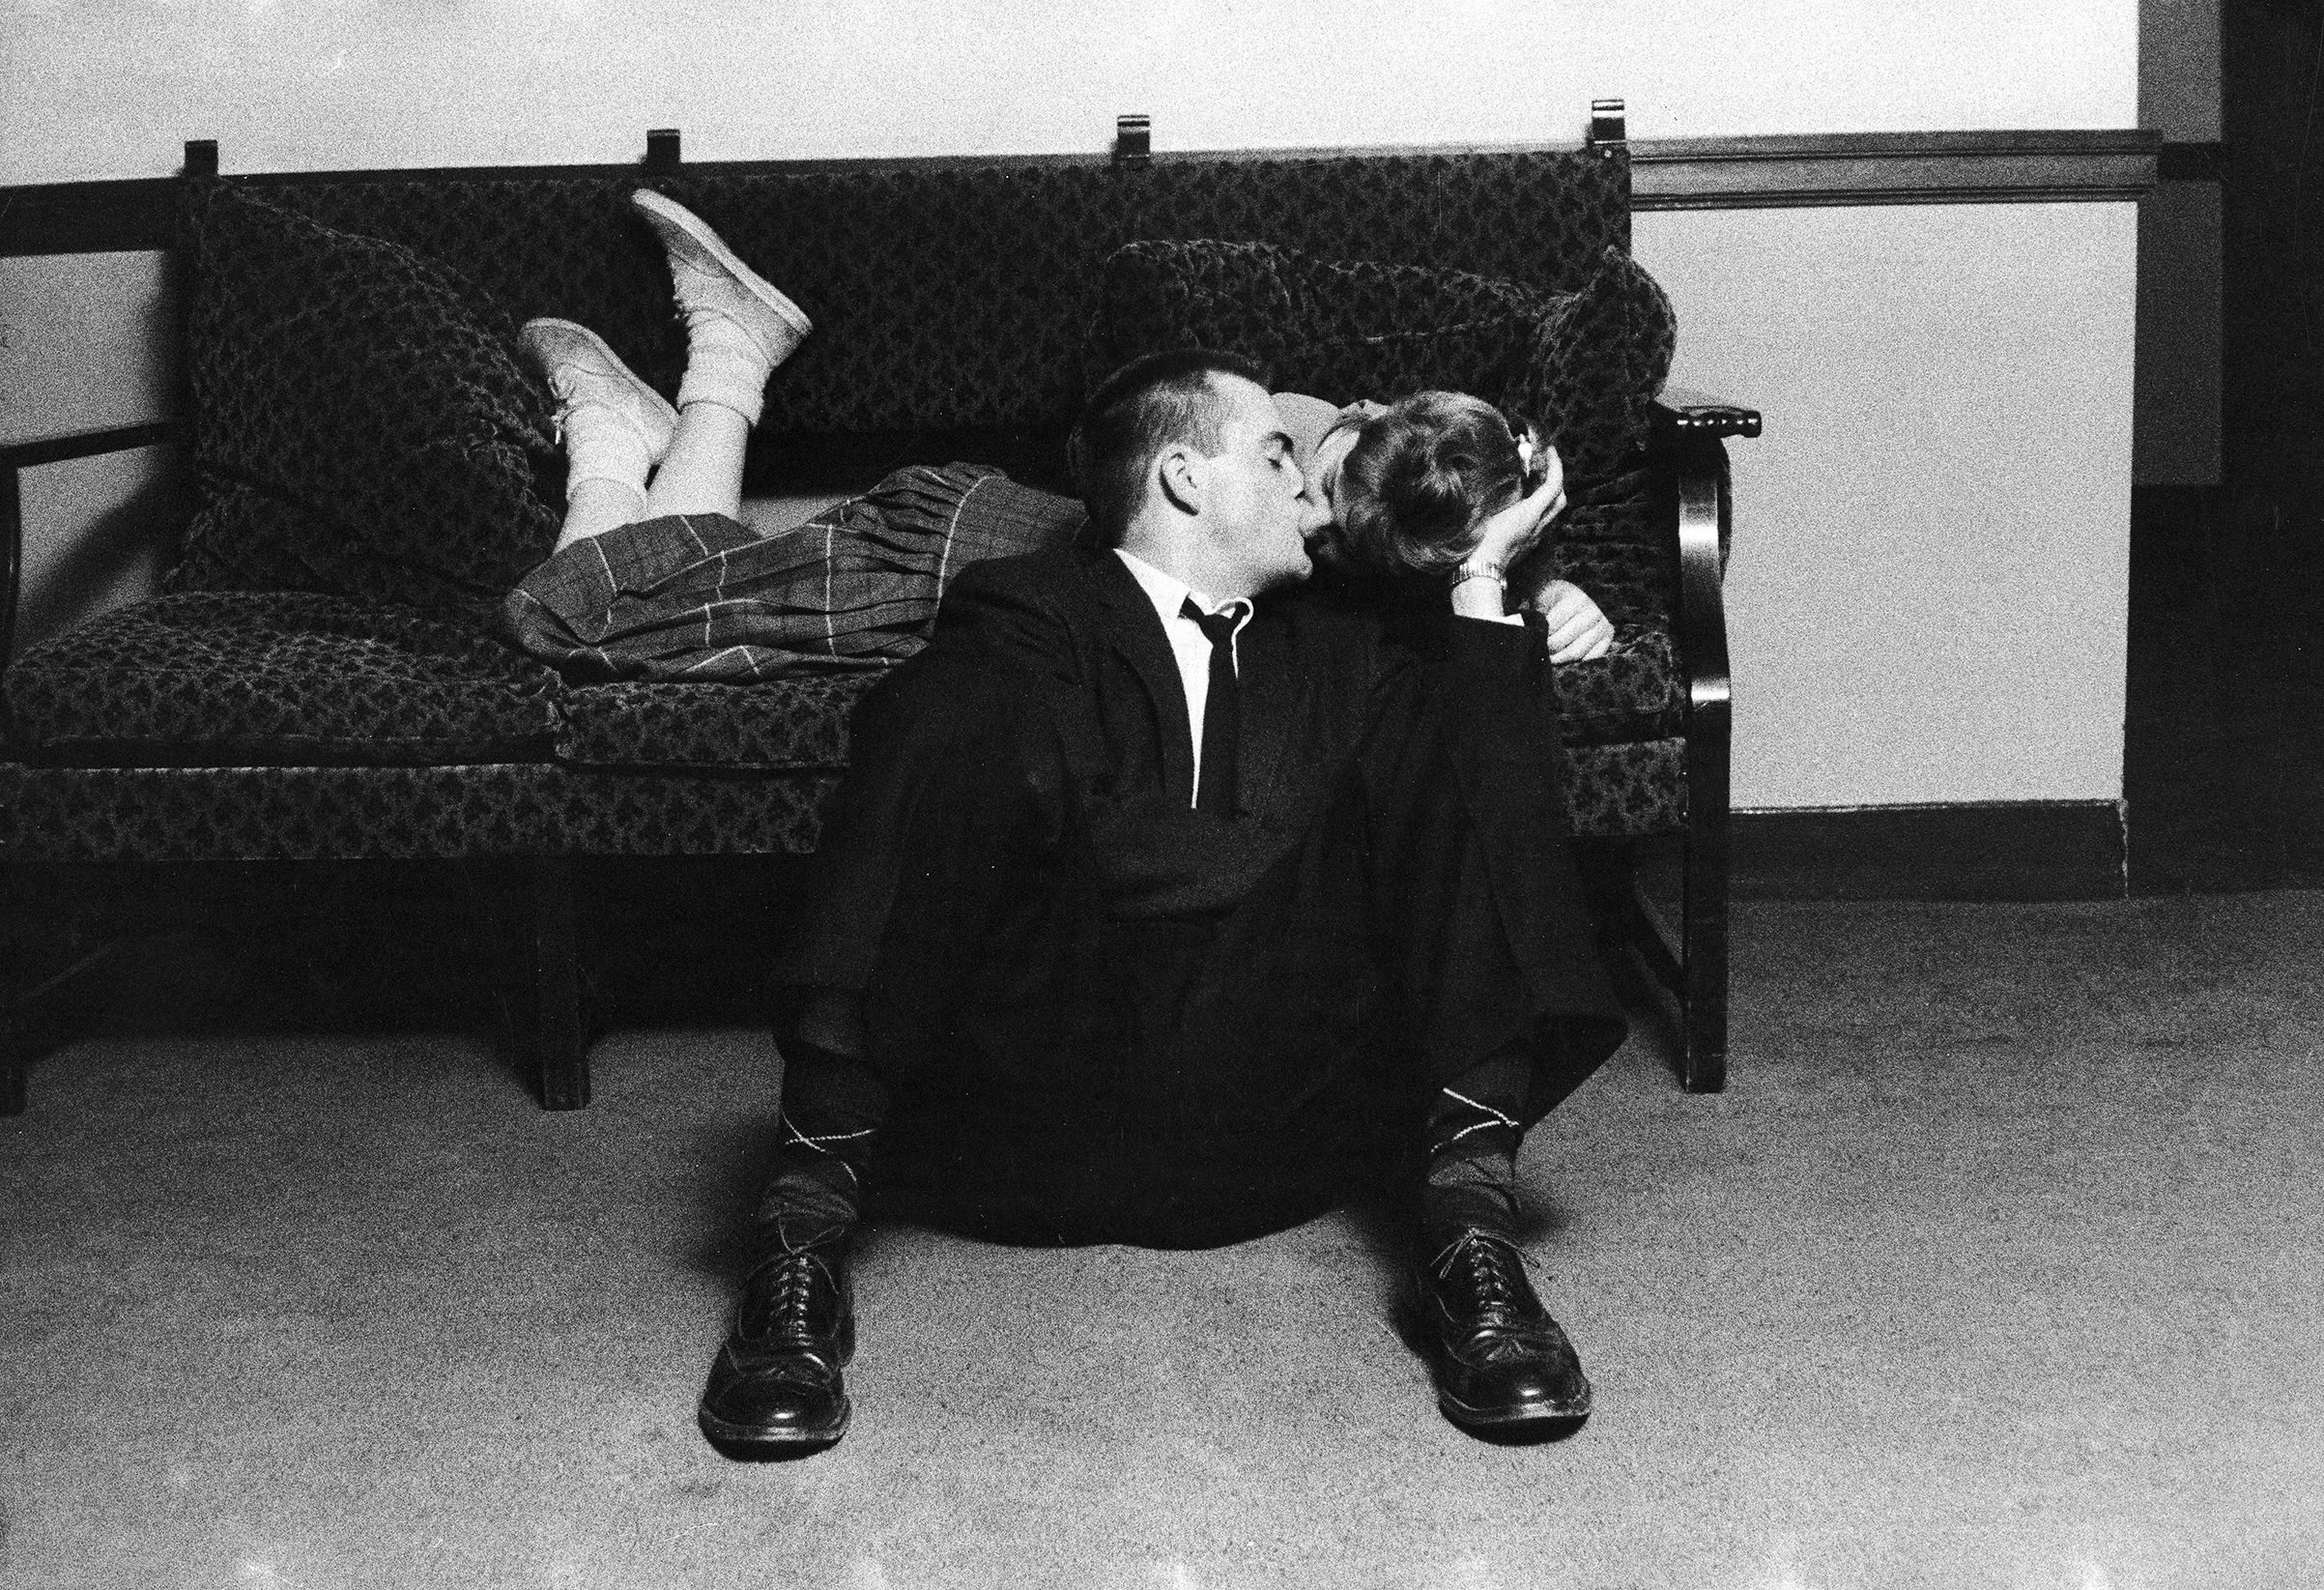 University of Michigan student couple engaged in an impromptu kiss, which was forbidden conduct even before school ban, because earlier rules required couples to have both feet on the floor, in the Union Building on campus. 1957.